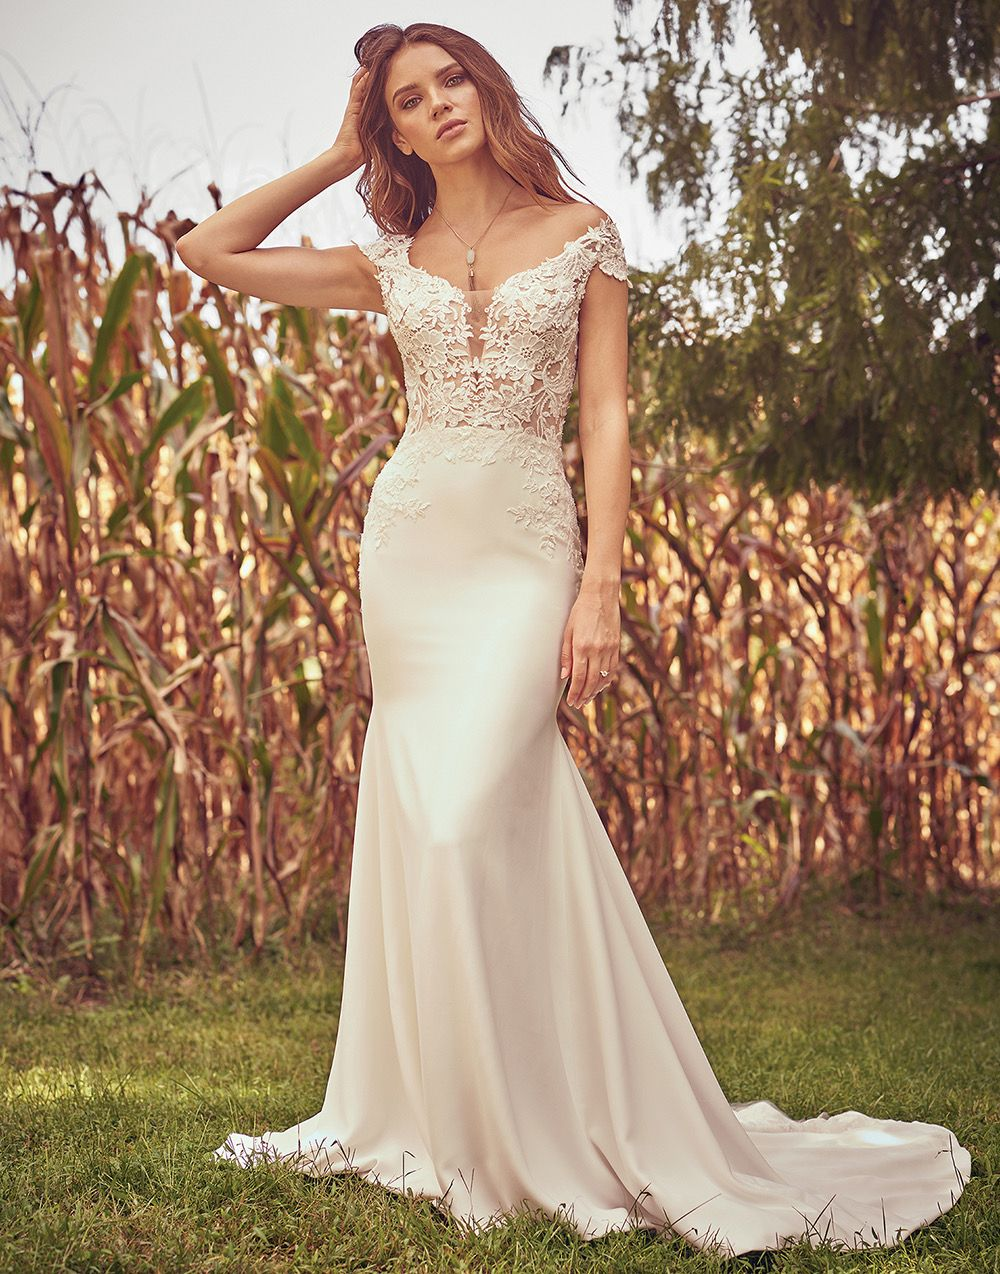 Lillian West Boho Chic And Romantic Wedding Gowns Lillian West Wedding Dress Boho Bride Dress Romantic Wedding Gown